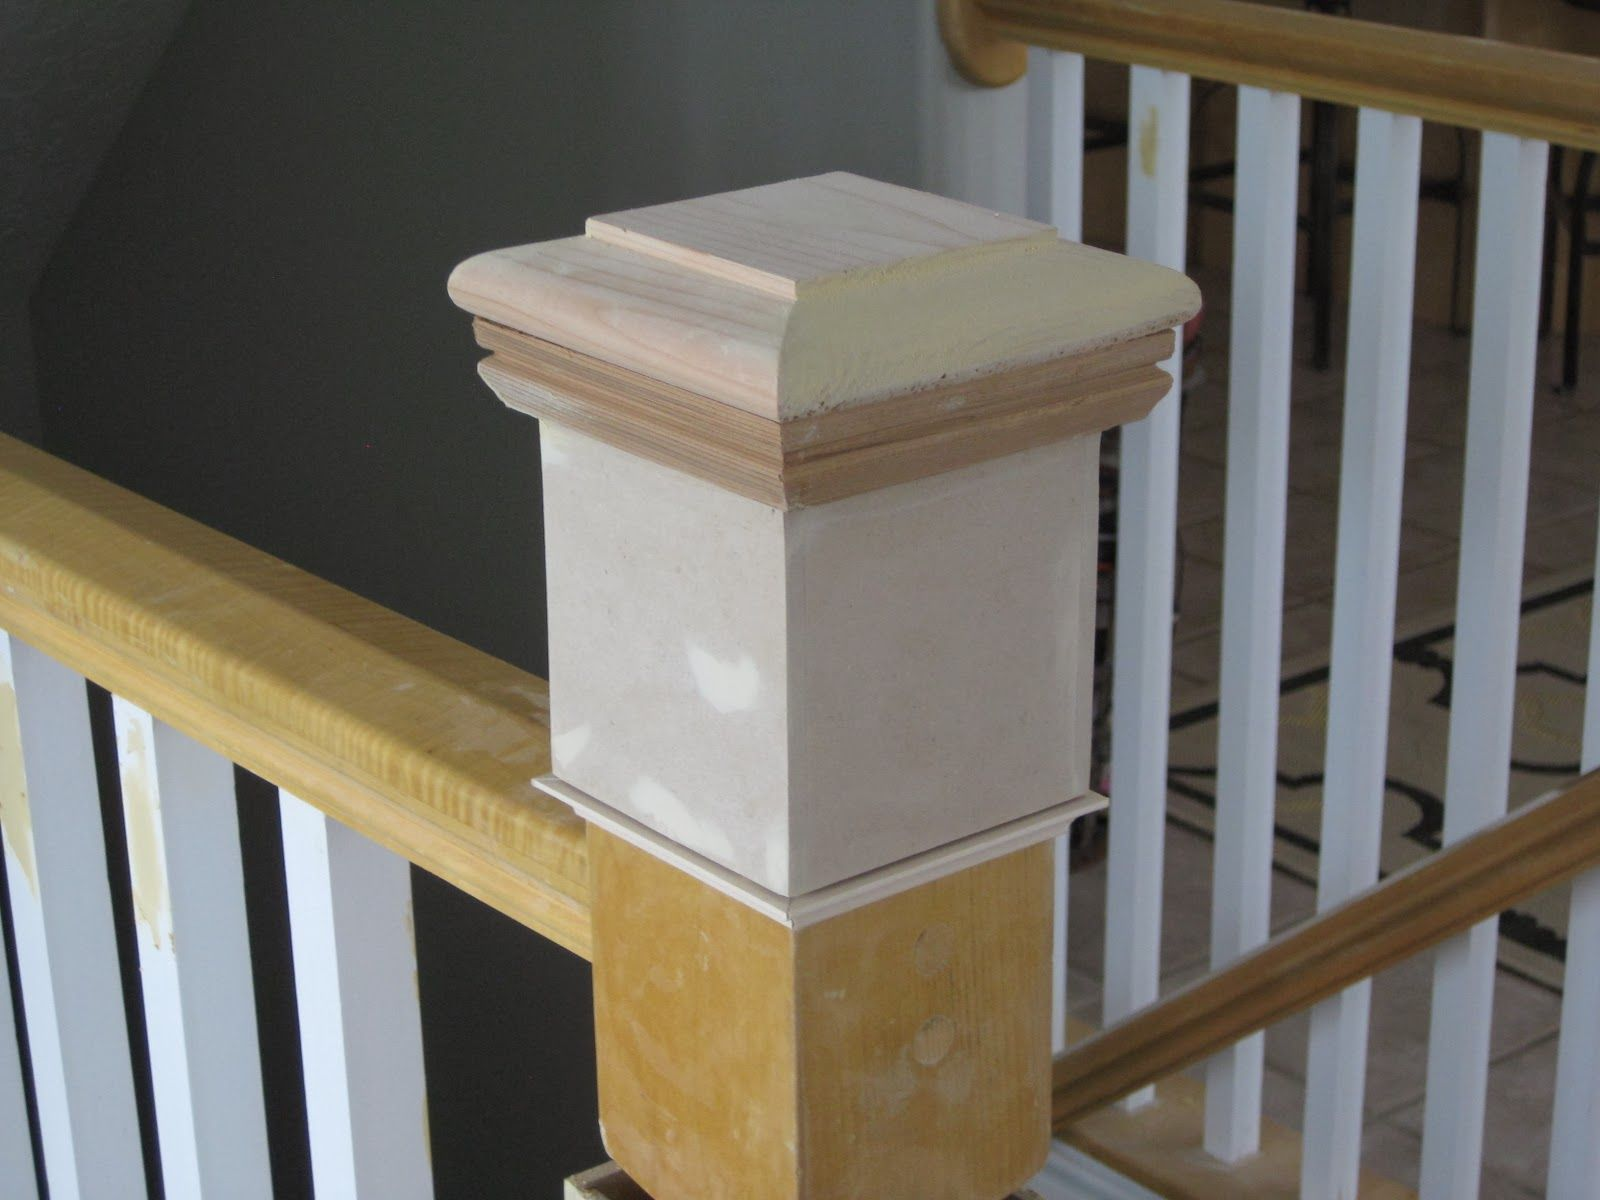 Newel Post Diy Tda Decorating And Design Featured On Remodelaholic Diy Stairs Stair Banister Diy Stair Railing